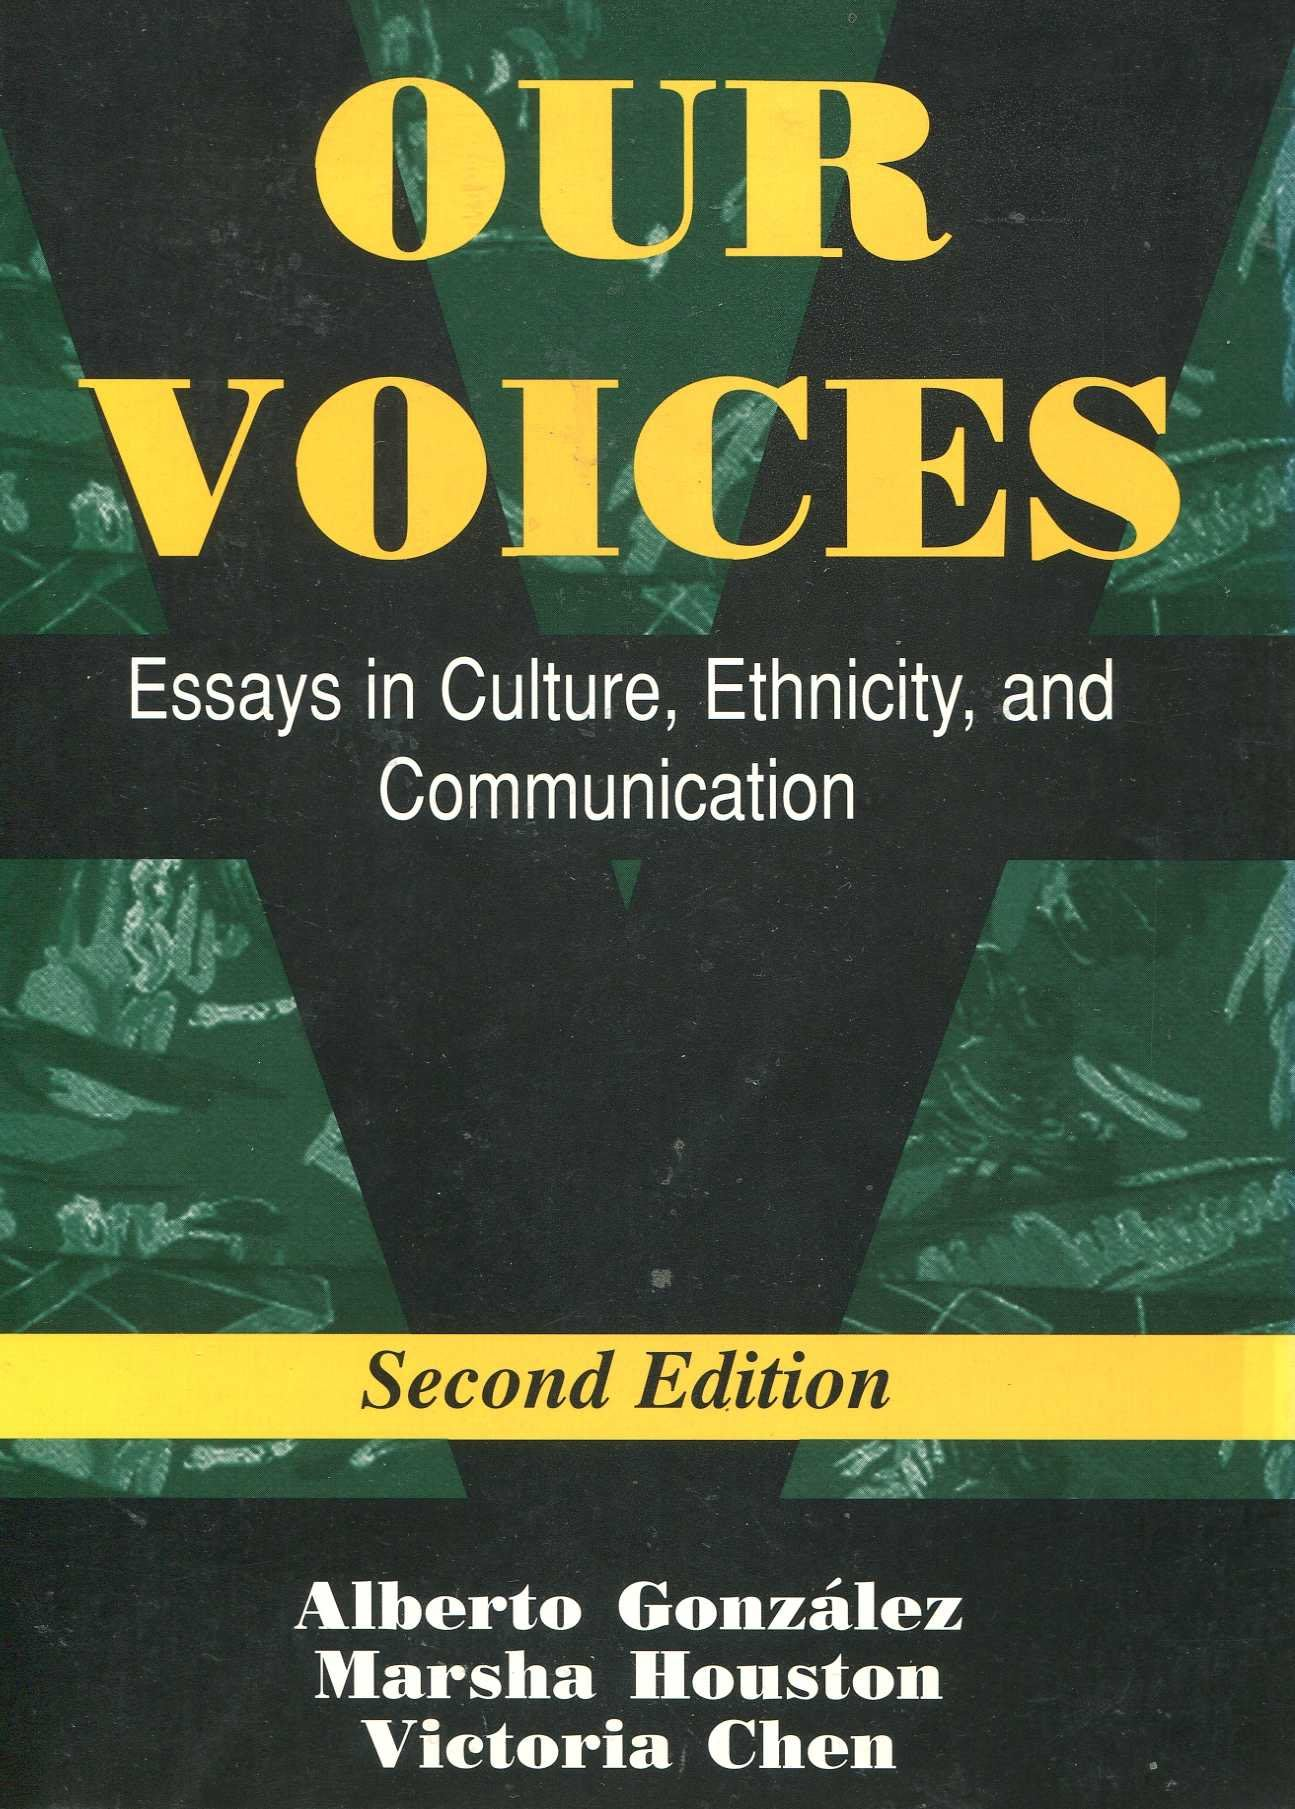 Our Voices: Essays in Culture, Ethnicity & Communication